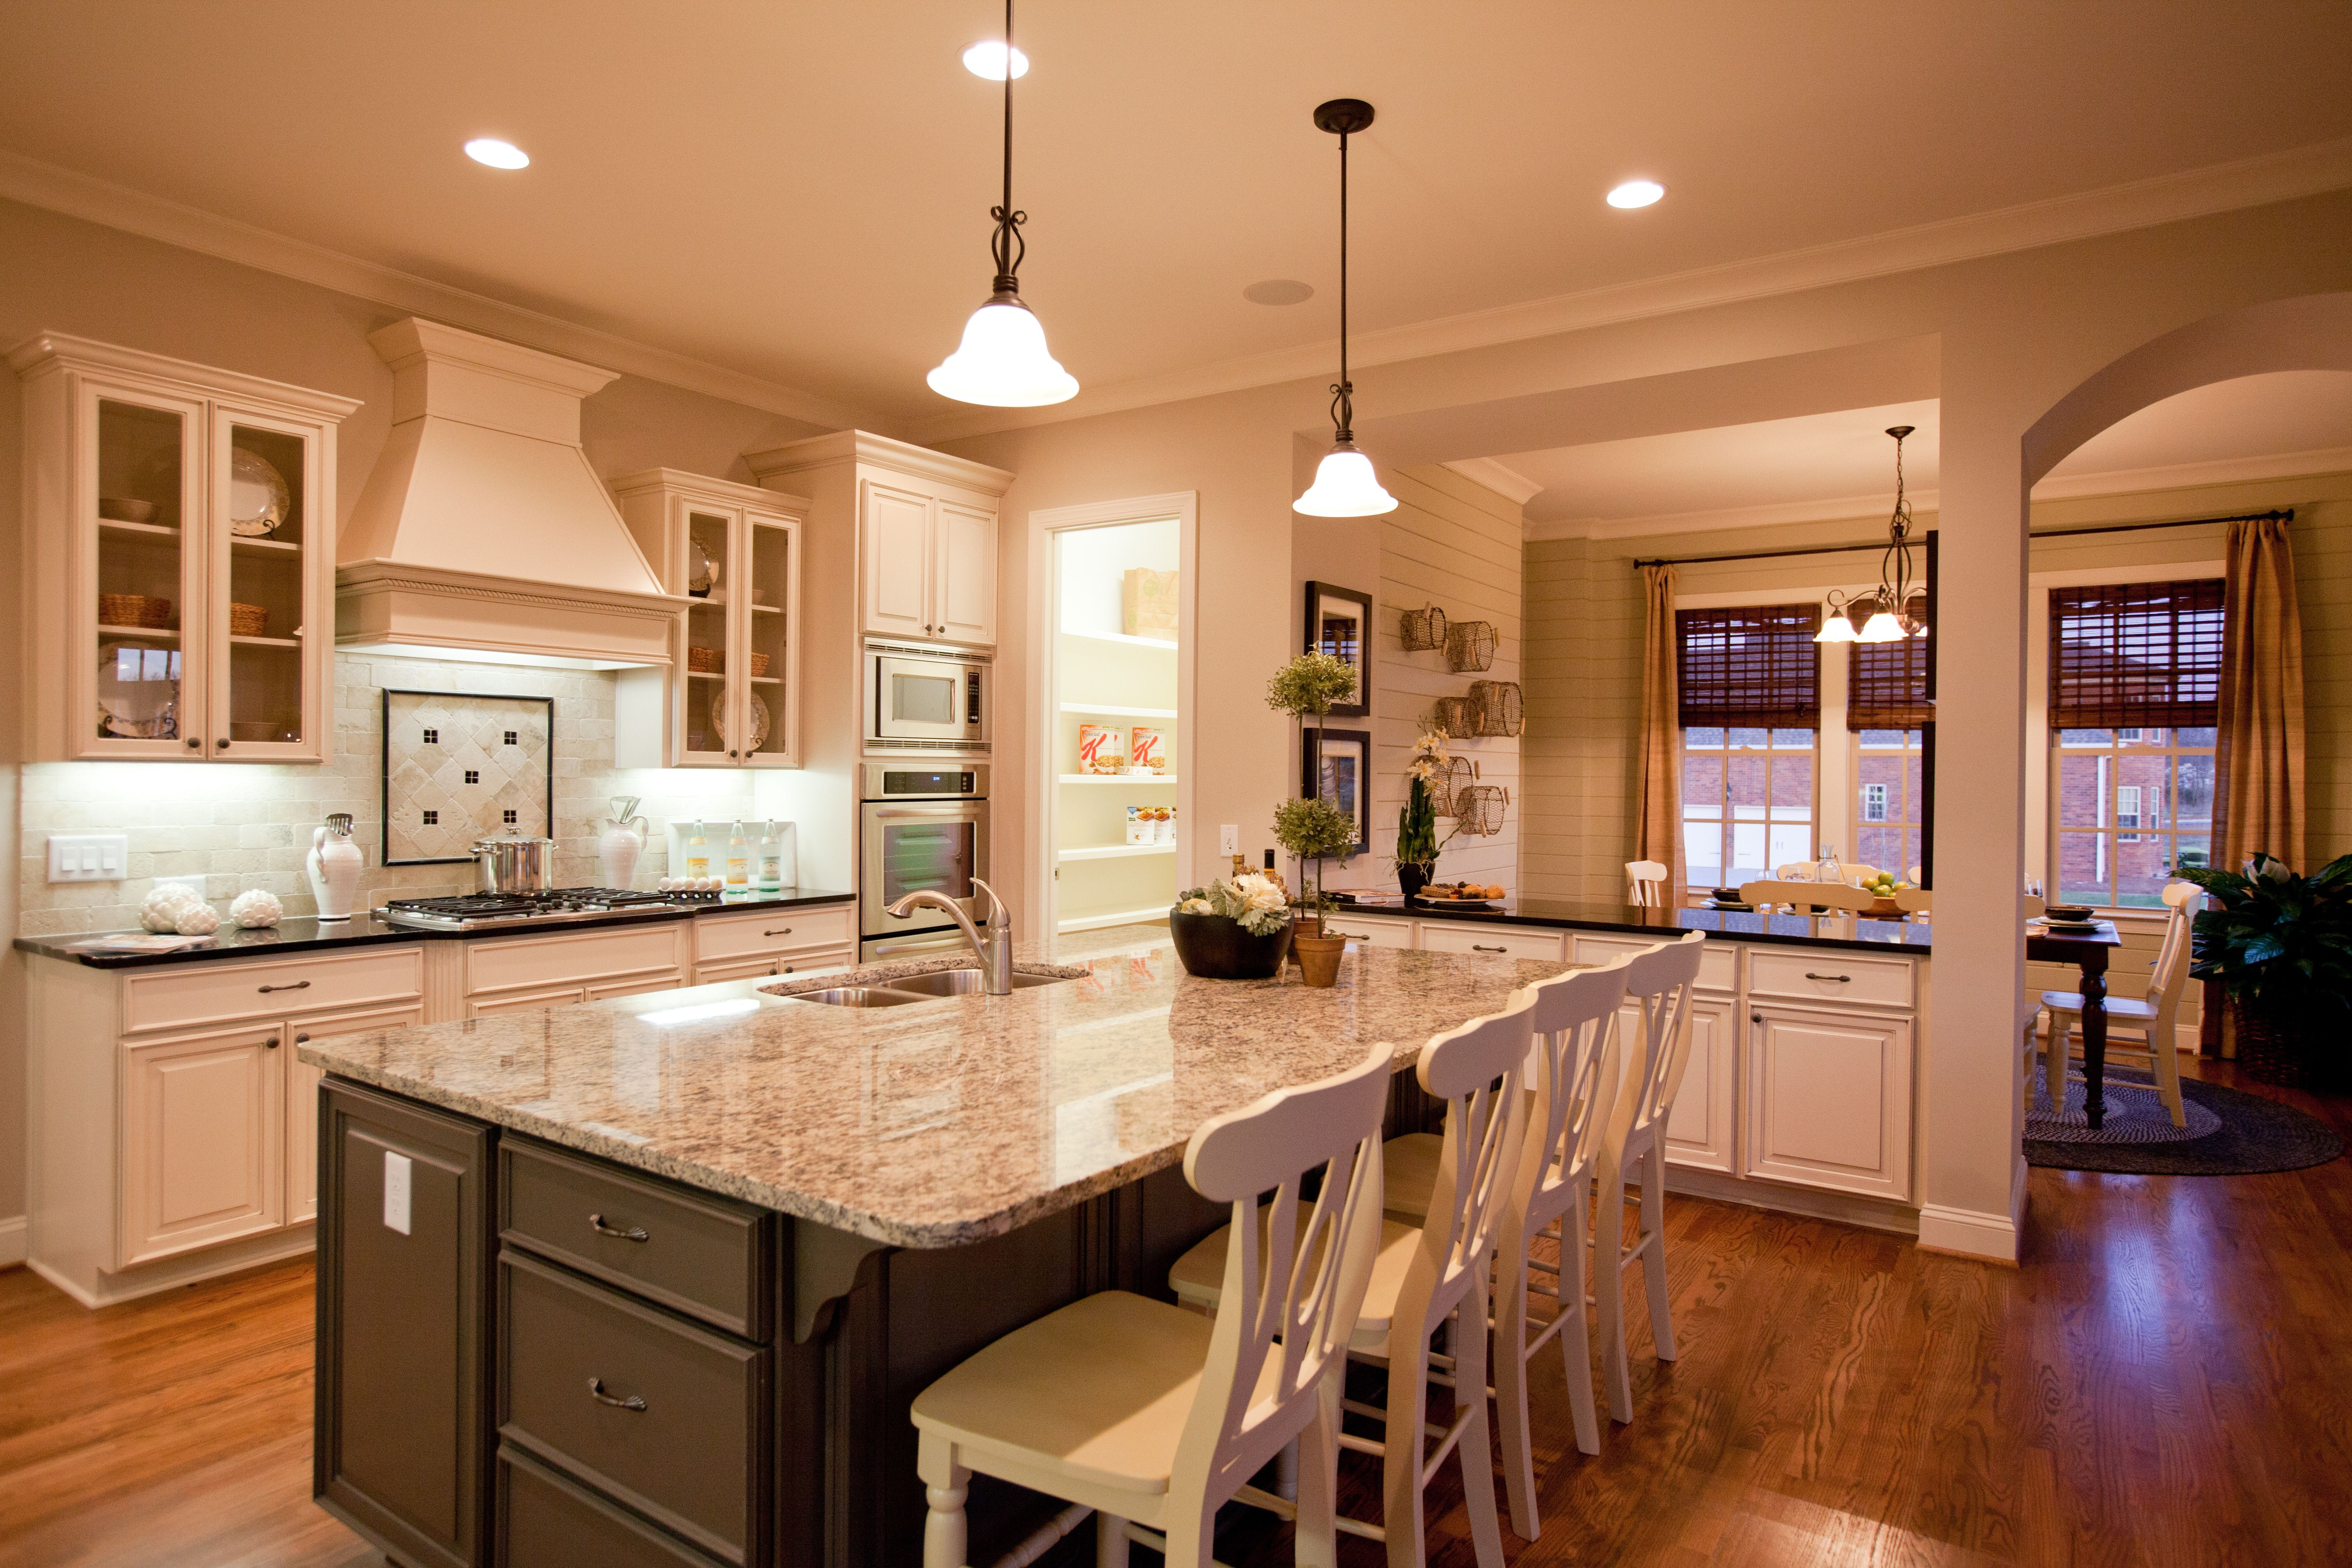 Kitchens In New Homes Kitchen Cabinets Ft Myers Fl Model Home Pictures Google Search